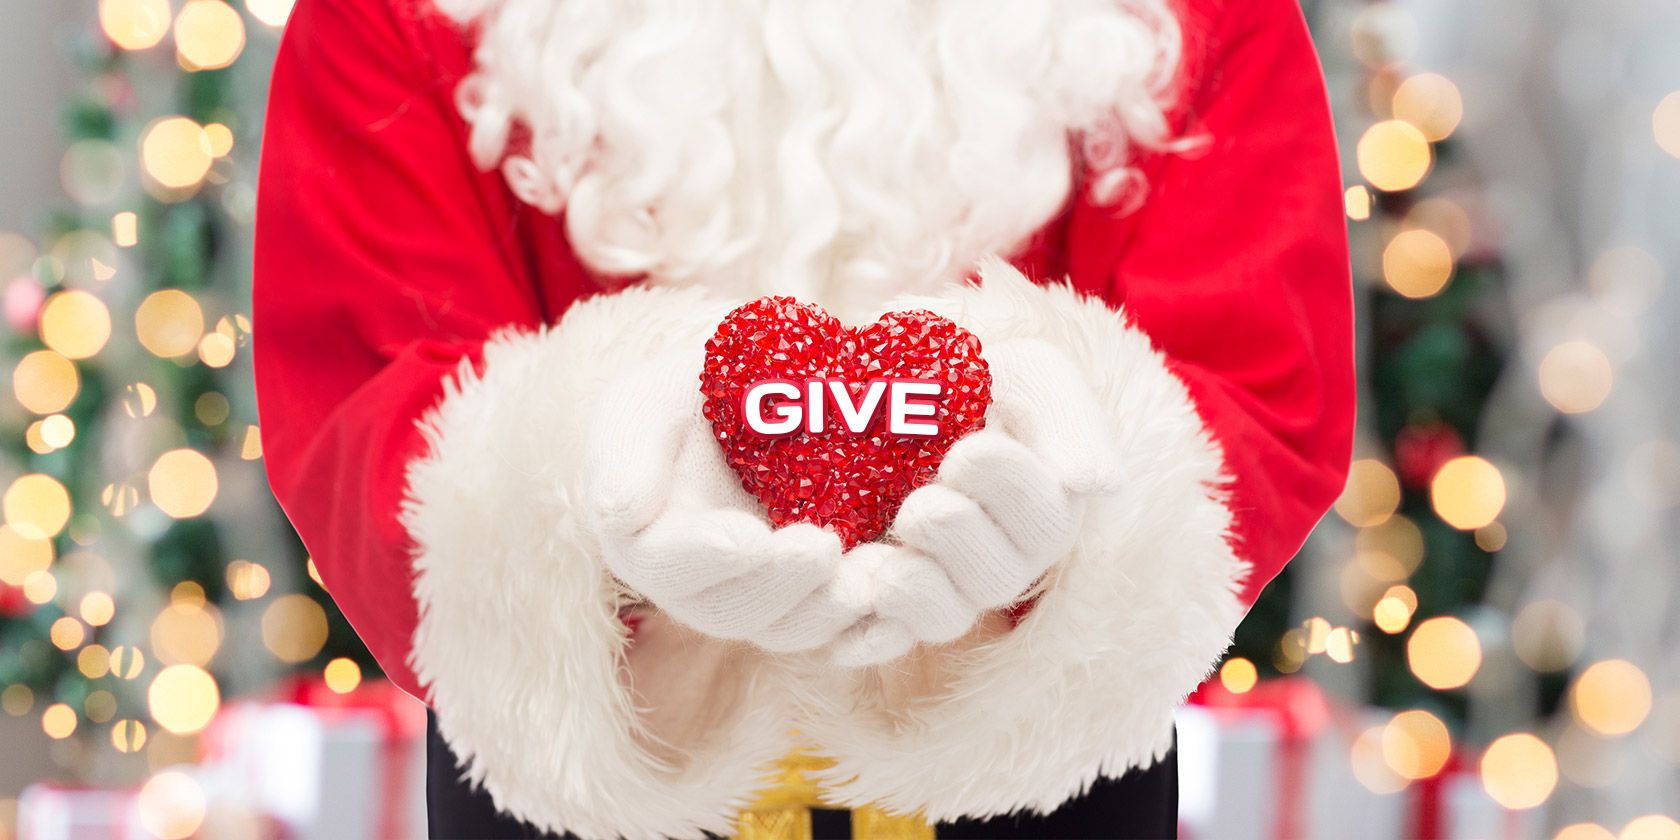 Christmas Assistance Ny Programs List 2021 Top 7 Christmas Charity Organizations That Help Low Income Families